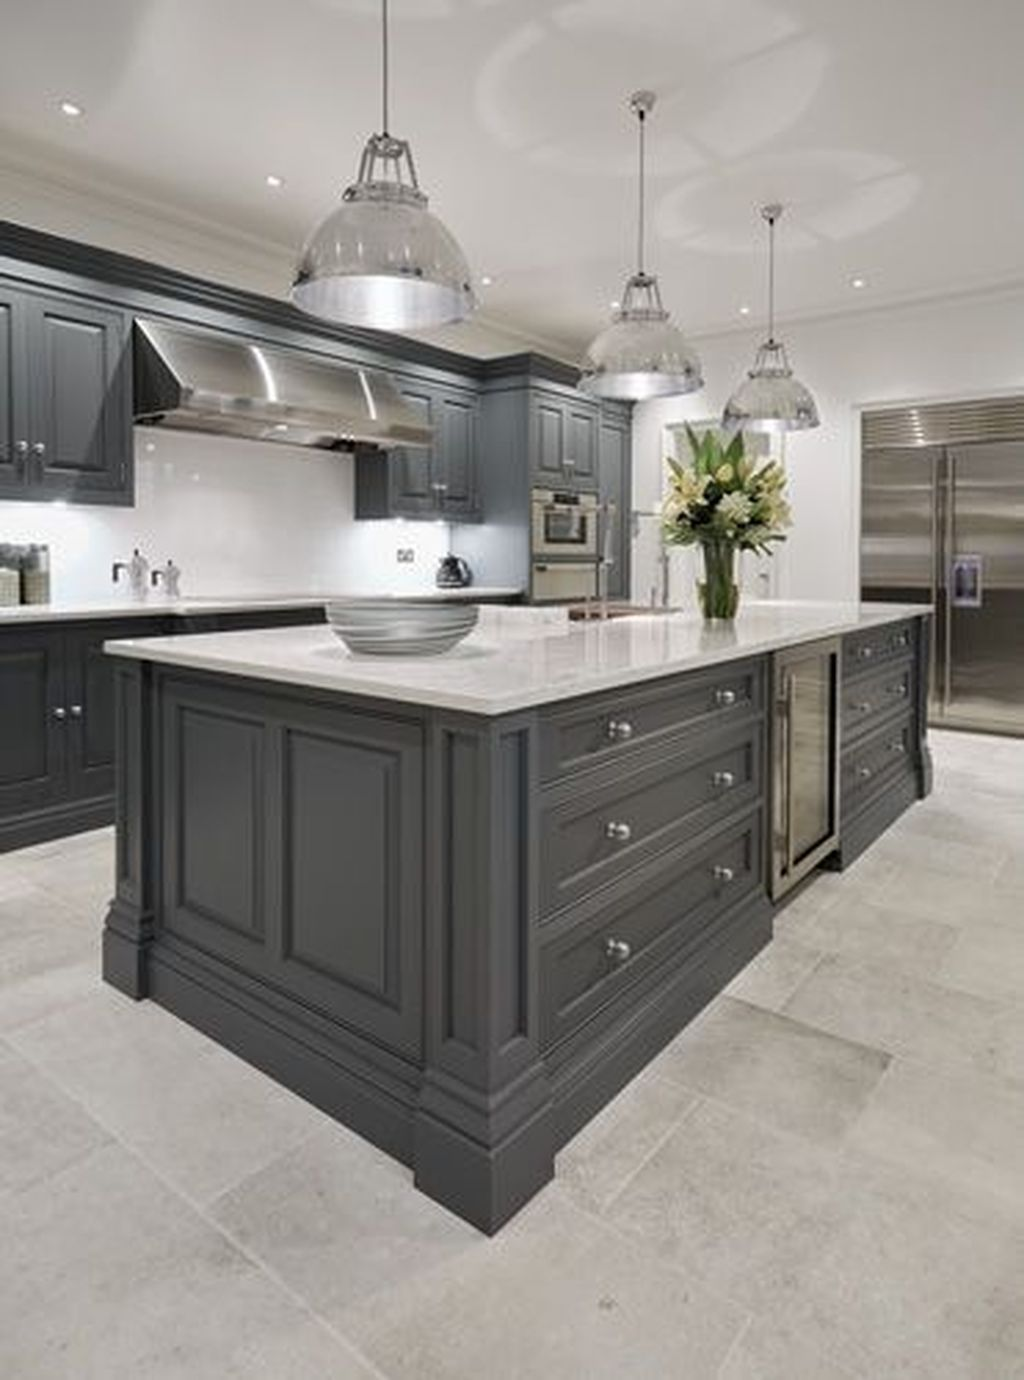 Awesome 30 Best Ideas For Luxury White Kitchen Design Decor Ideas More At Https Trendecora Com 2 Grey Kitchen Designs Kitchen Design Elegant Kitchen Design